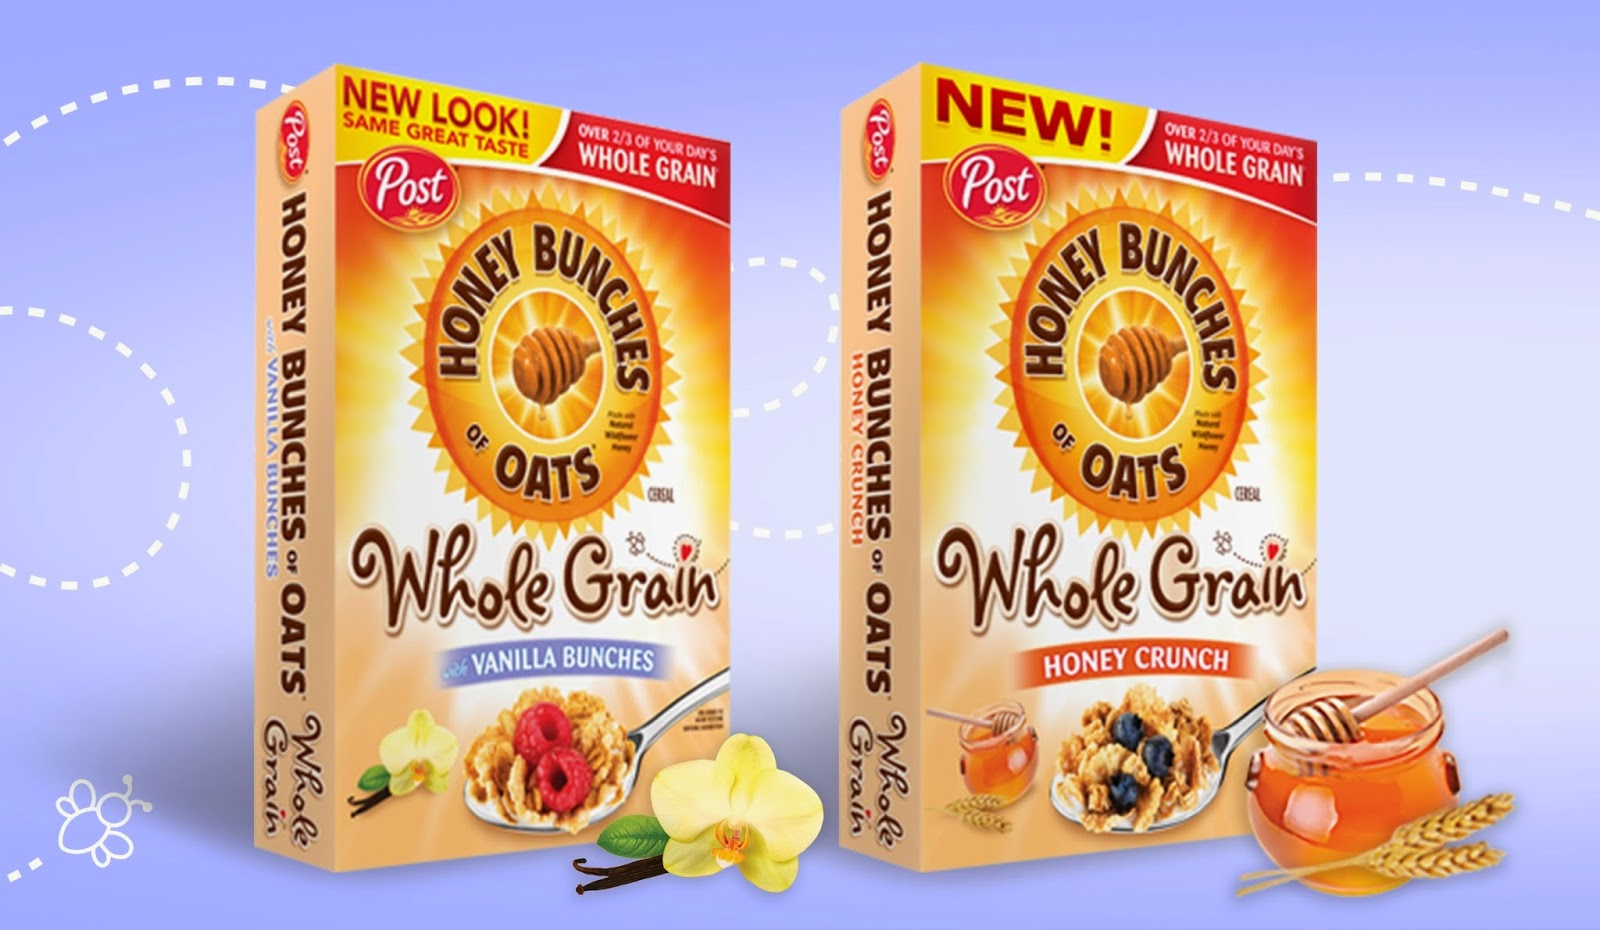 HBO Whole Grain